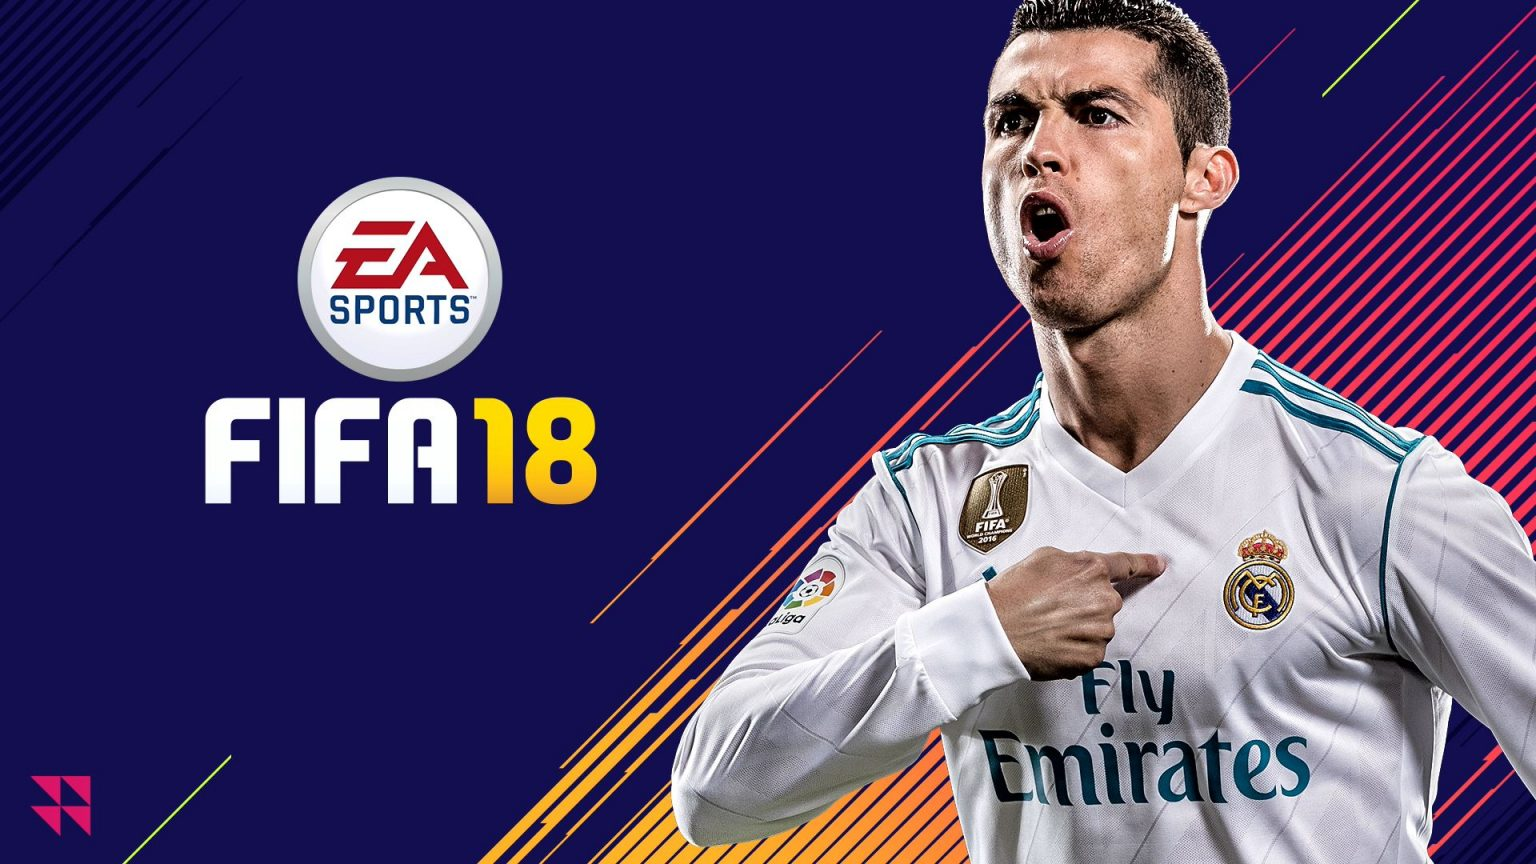 FIFA 18 Version Full Mobile Game Free Download